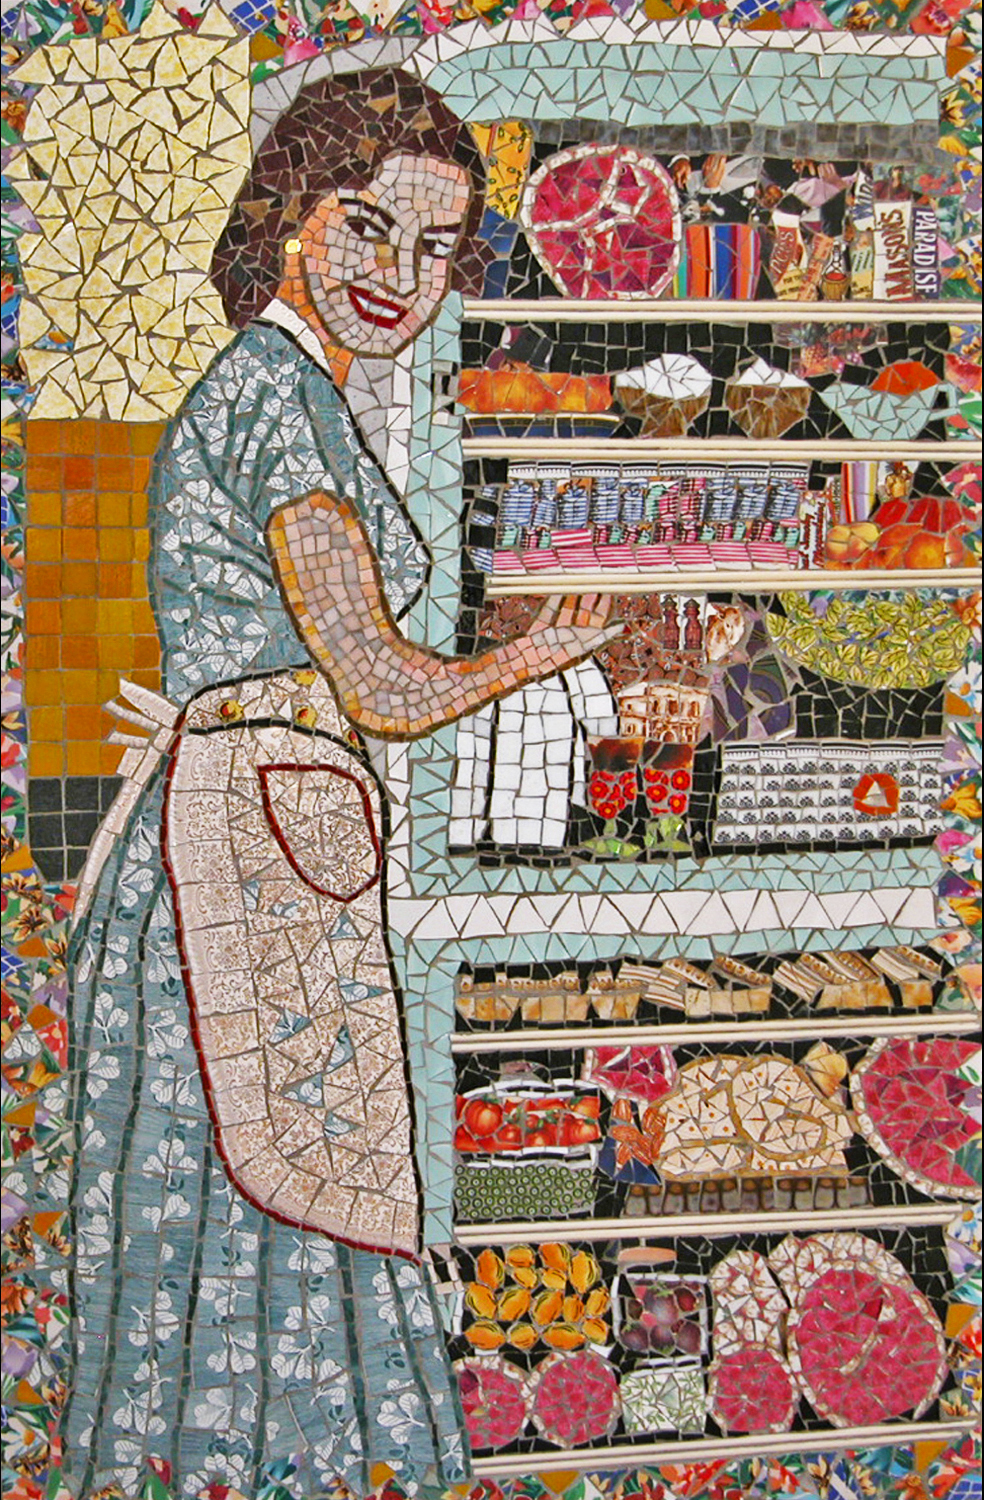 Pique Assiette - Pique Assiette mosaic also known as trencadis, broken tile mosaics and memory ware is a type of mosaic made from cemented together tile shards and broken china ware. Pique assiette literally translated, means